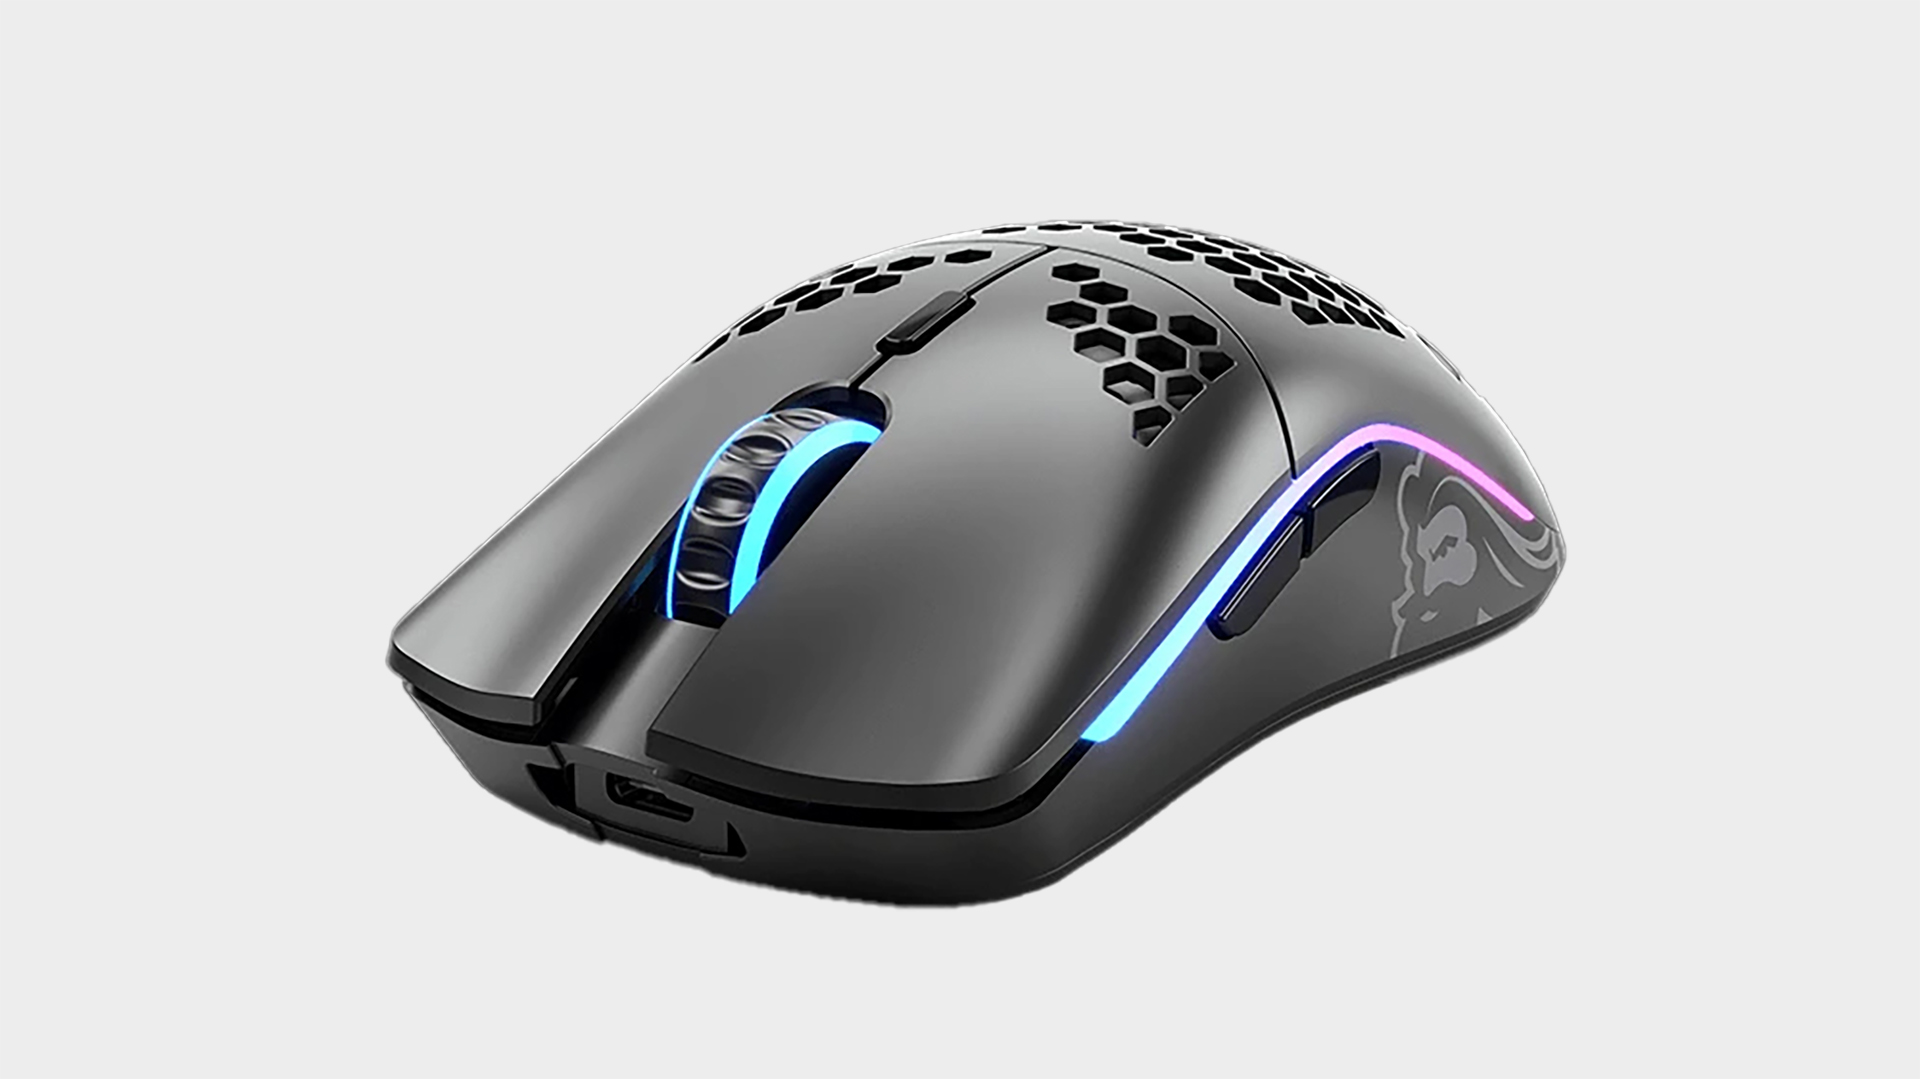 Glorious Model O gaming mouse on grey background